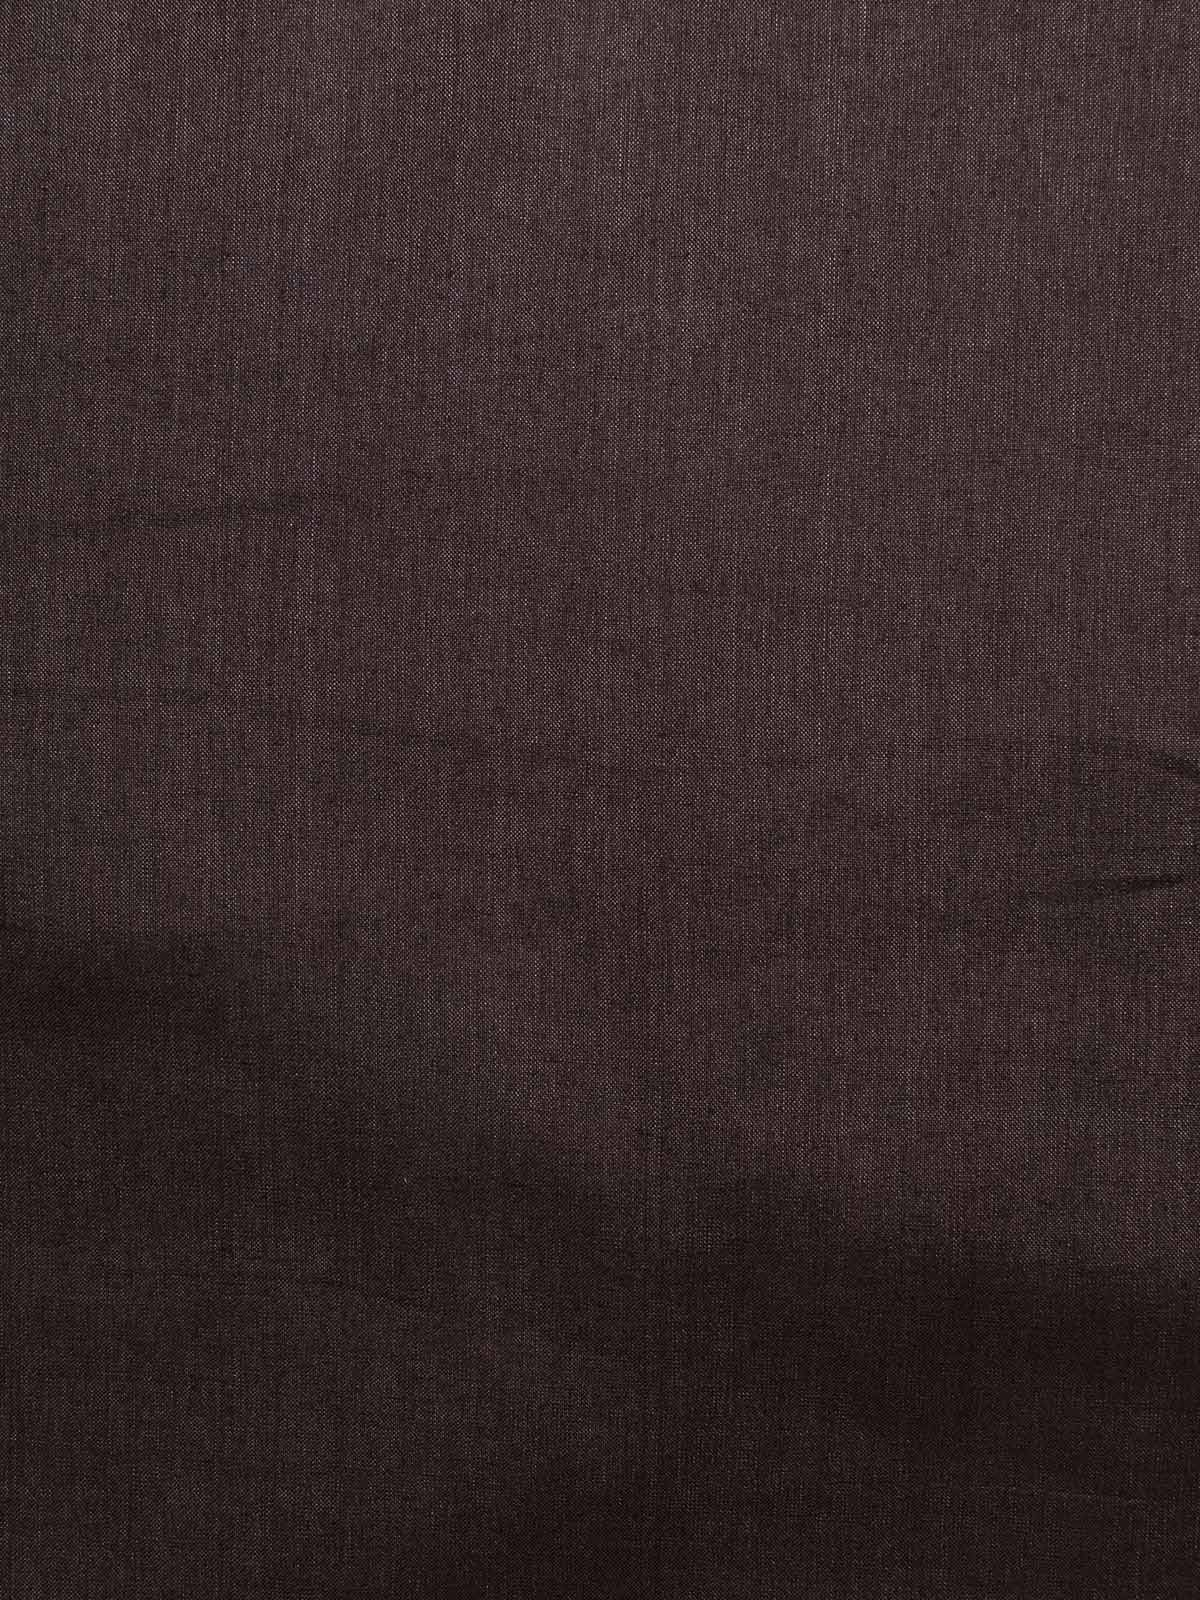 Black Red Cotton Silk Fabric